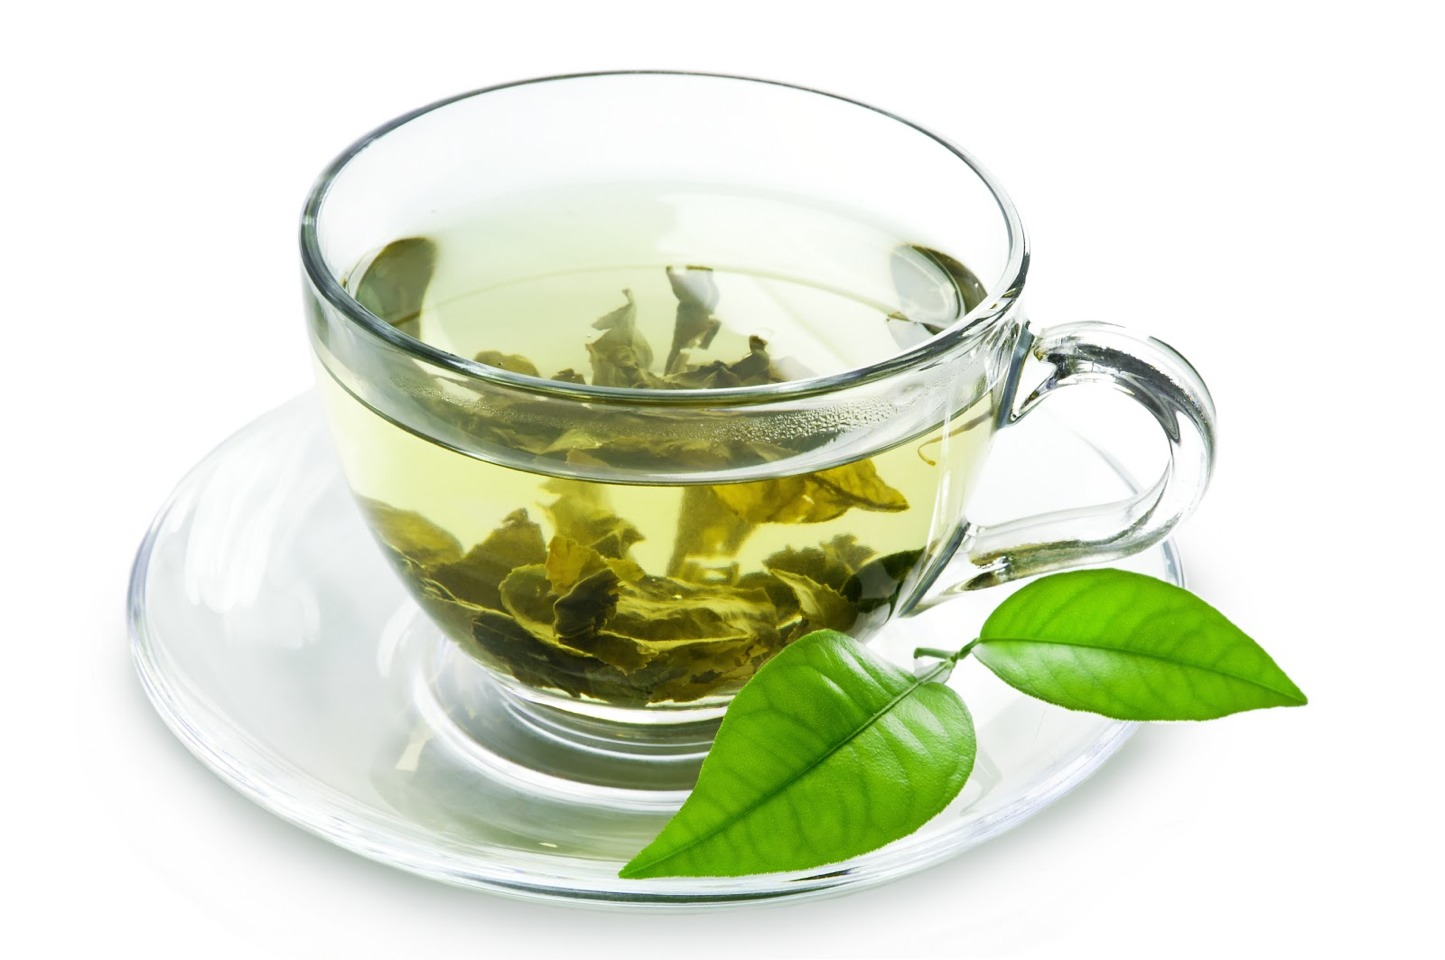 Green tea can also help with acne, drinking a few cups of this a day helps to purify your skin, lemon in hot water every morning also does this and can also help you lose weight.